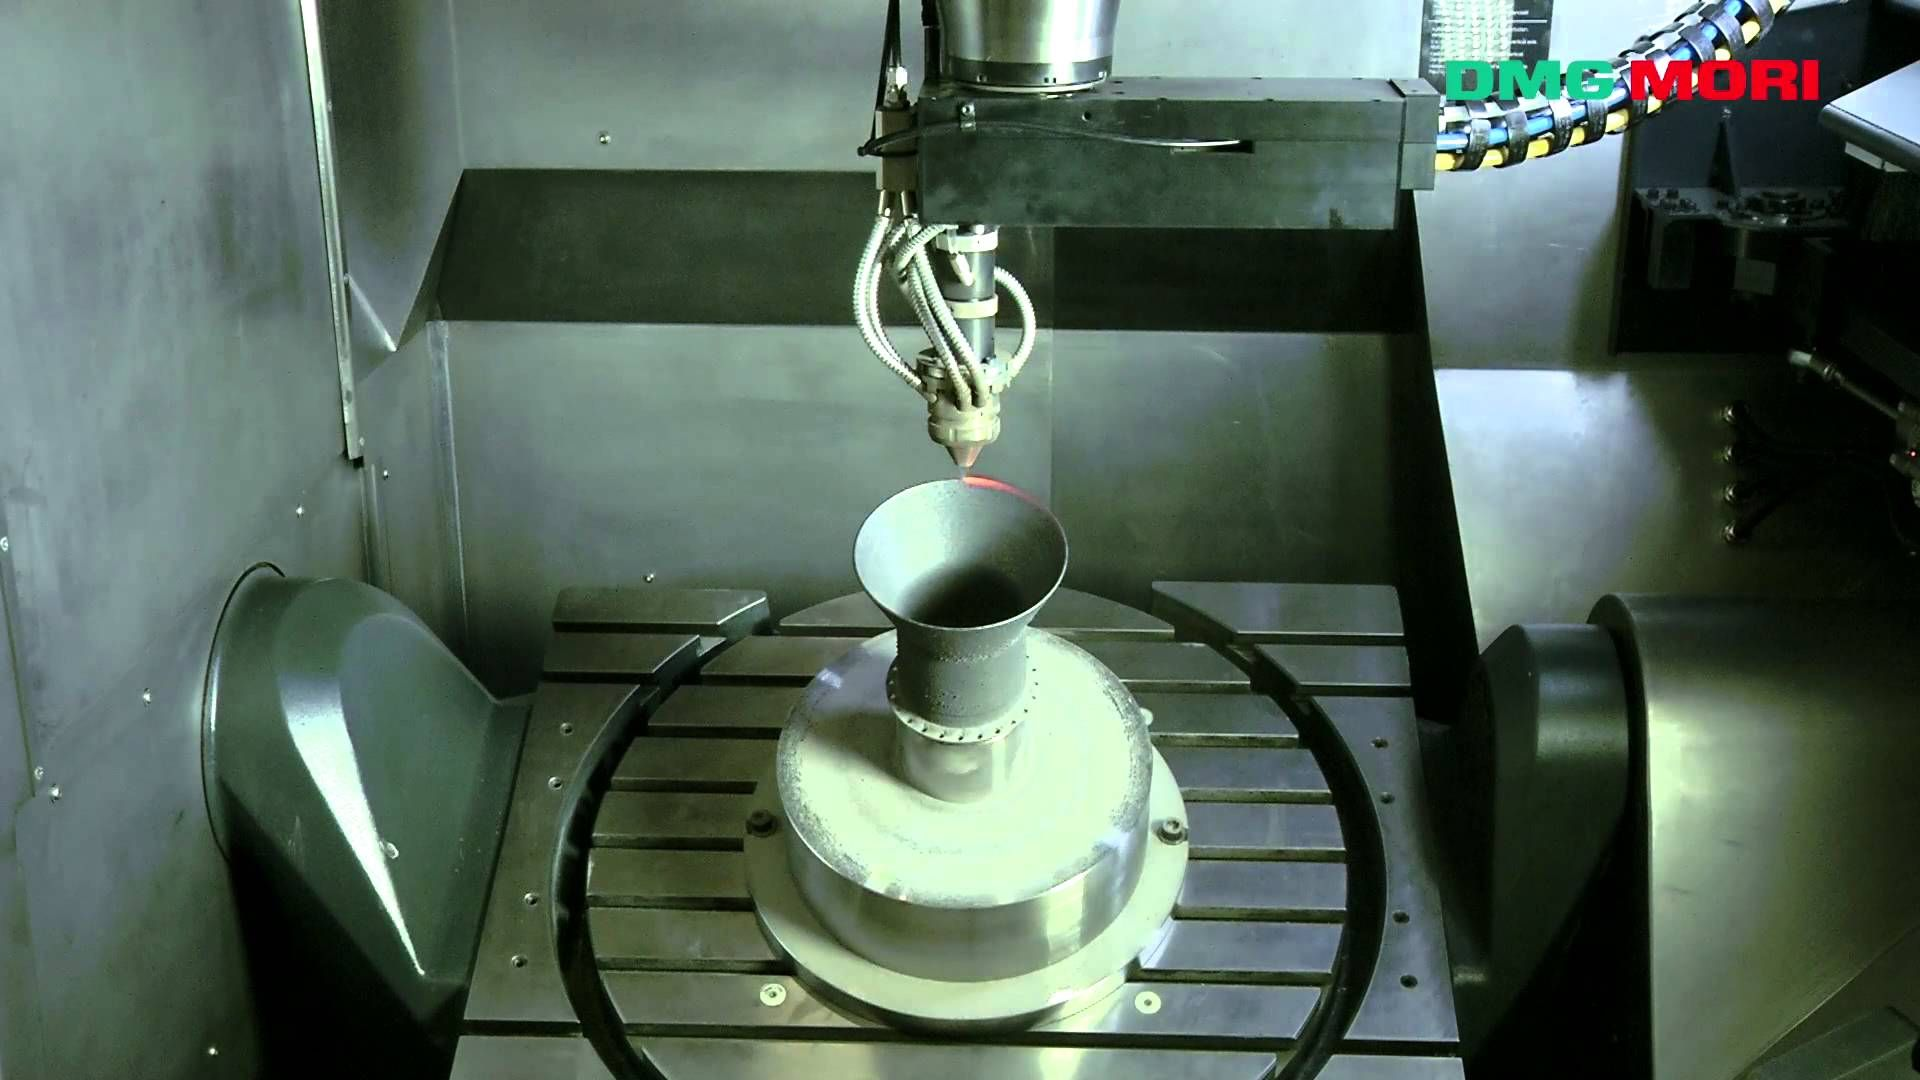 Hybrid ( Additive and Subtractive manufacturing) machine